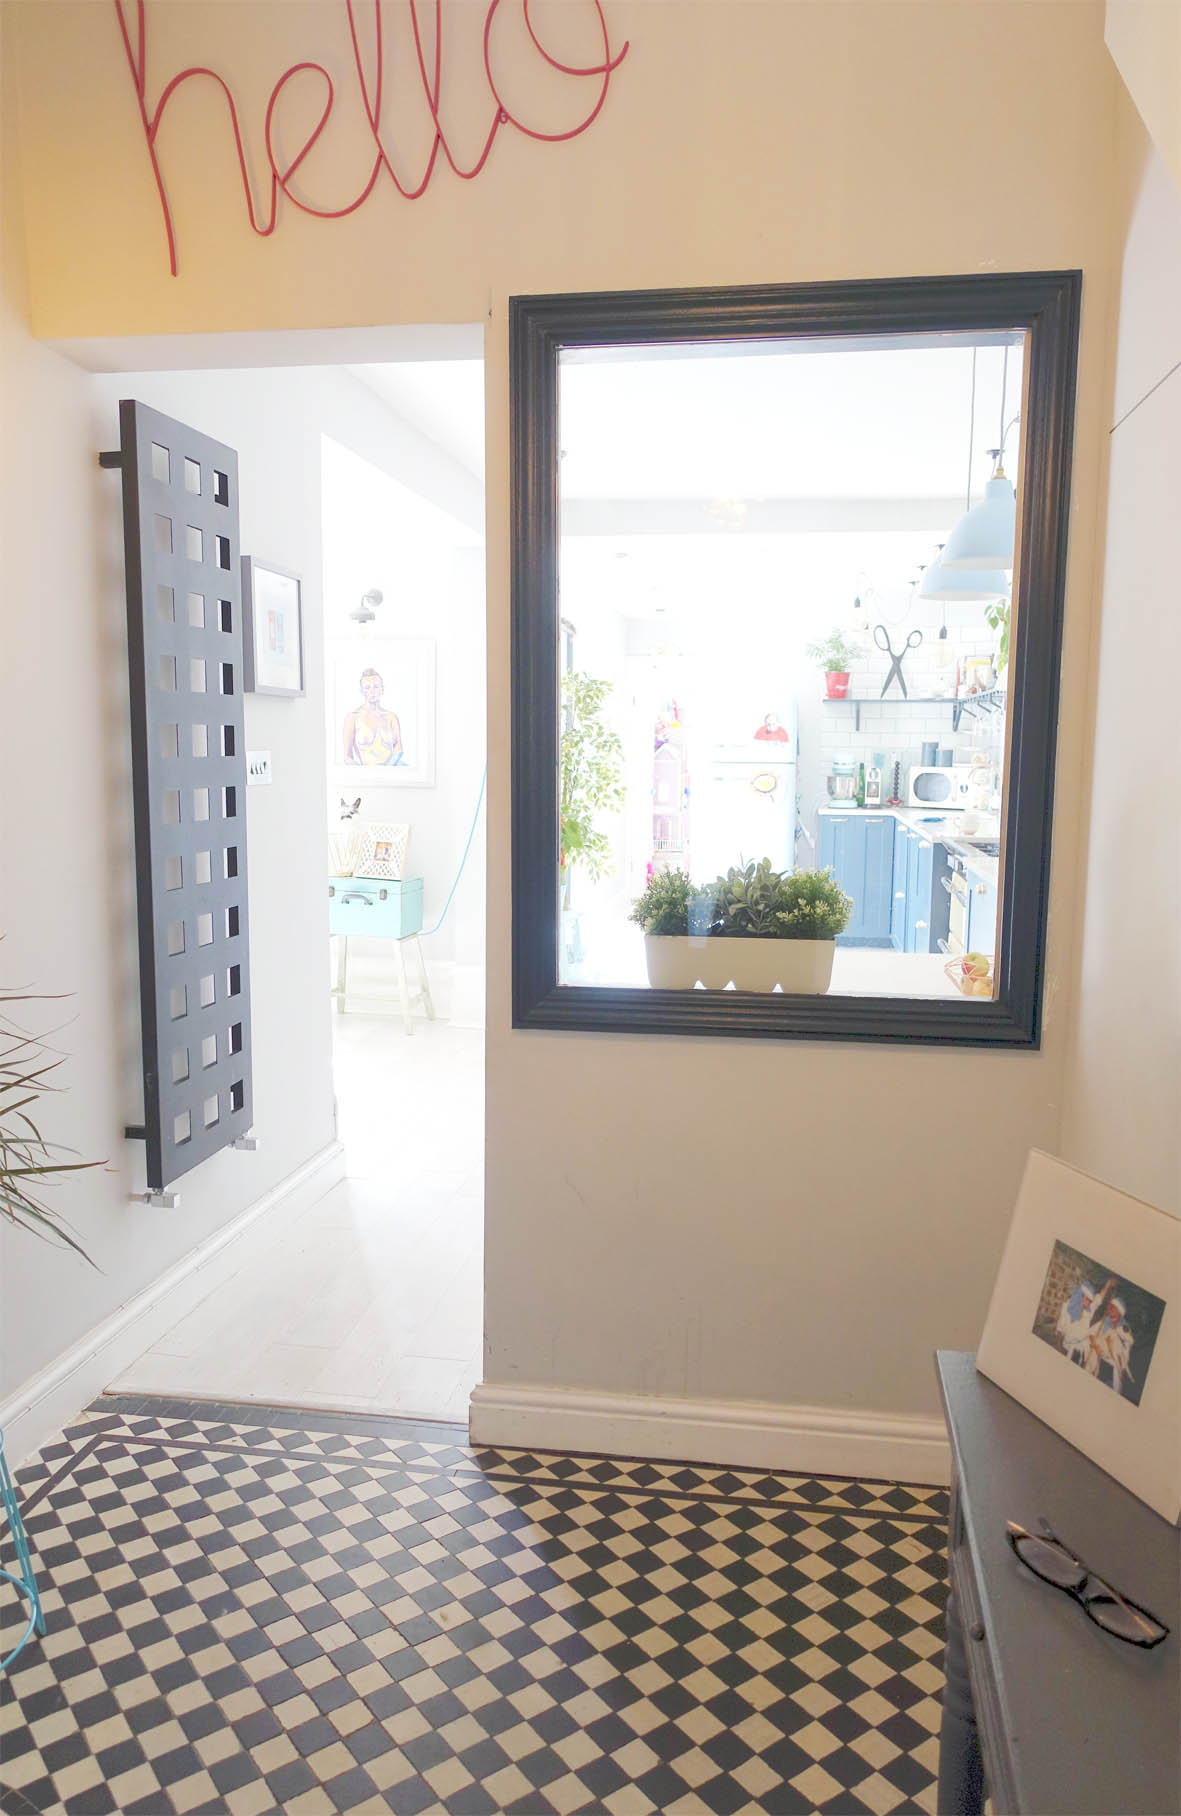 """A bright """"Hello' and original Victorian tiles greet you in the entrance hall where an internal dark-framed window gives a little sneak peek of the vibrant home."""